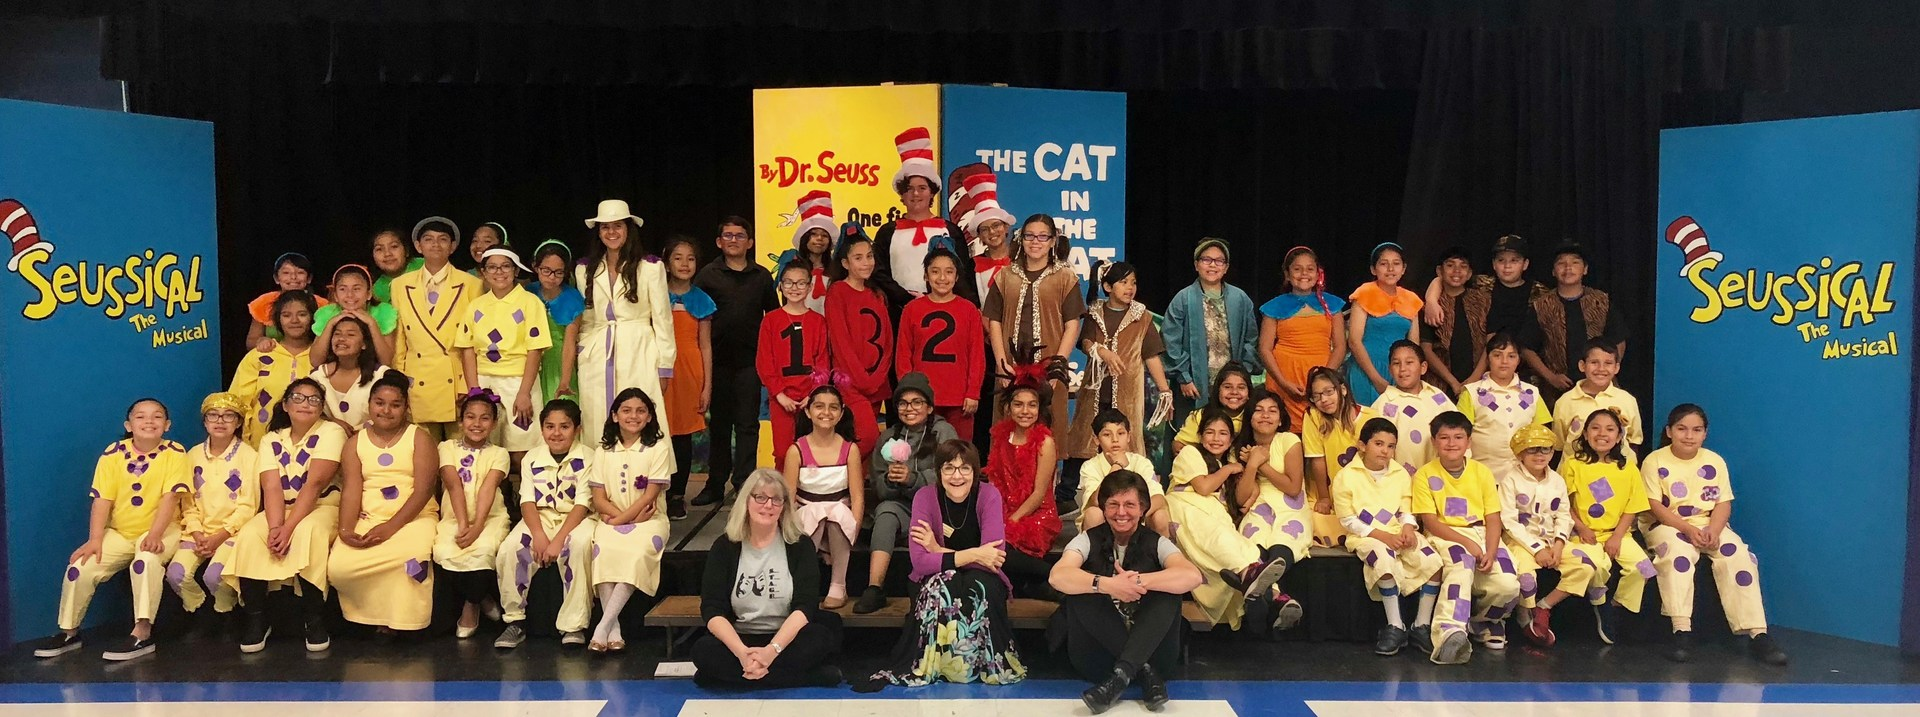 The cast of Seussical the Musical.